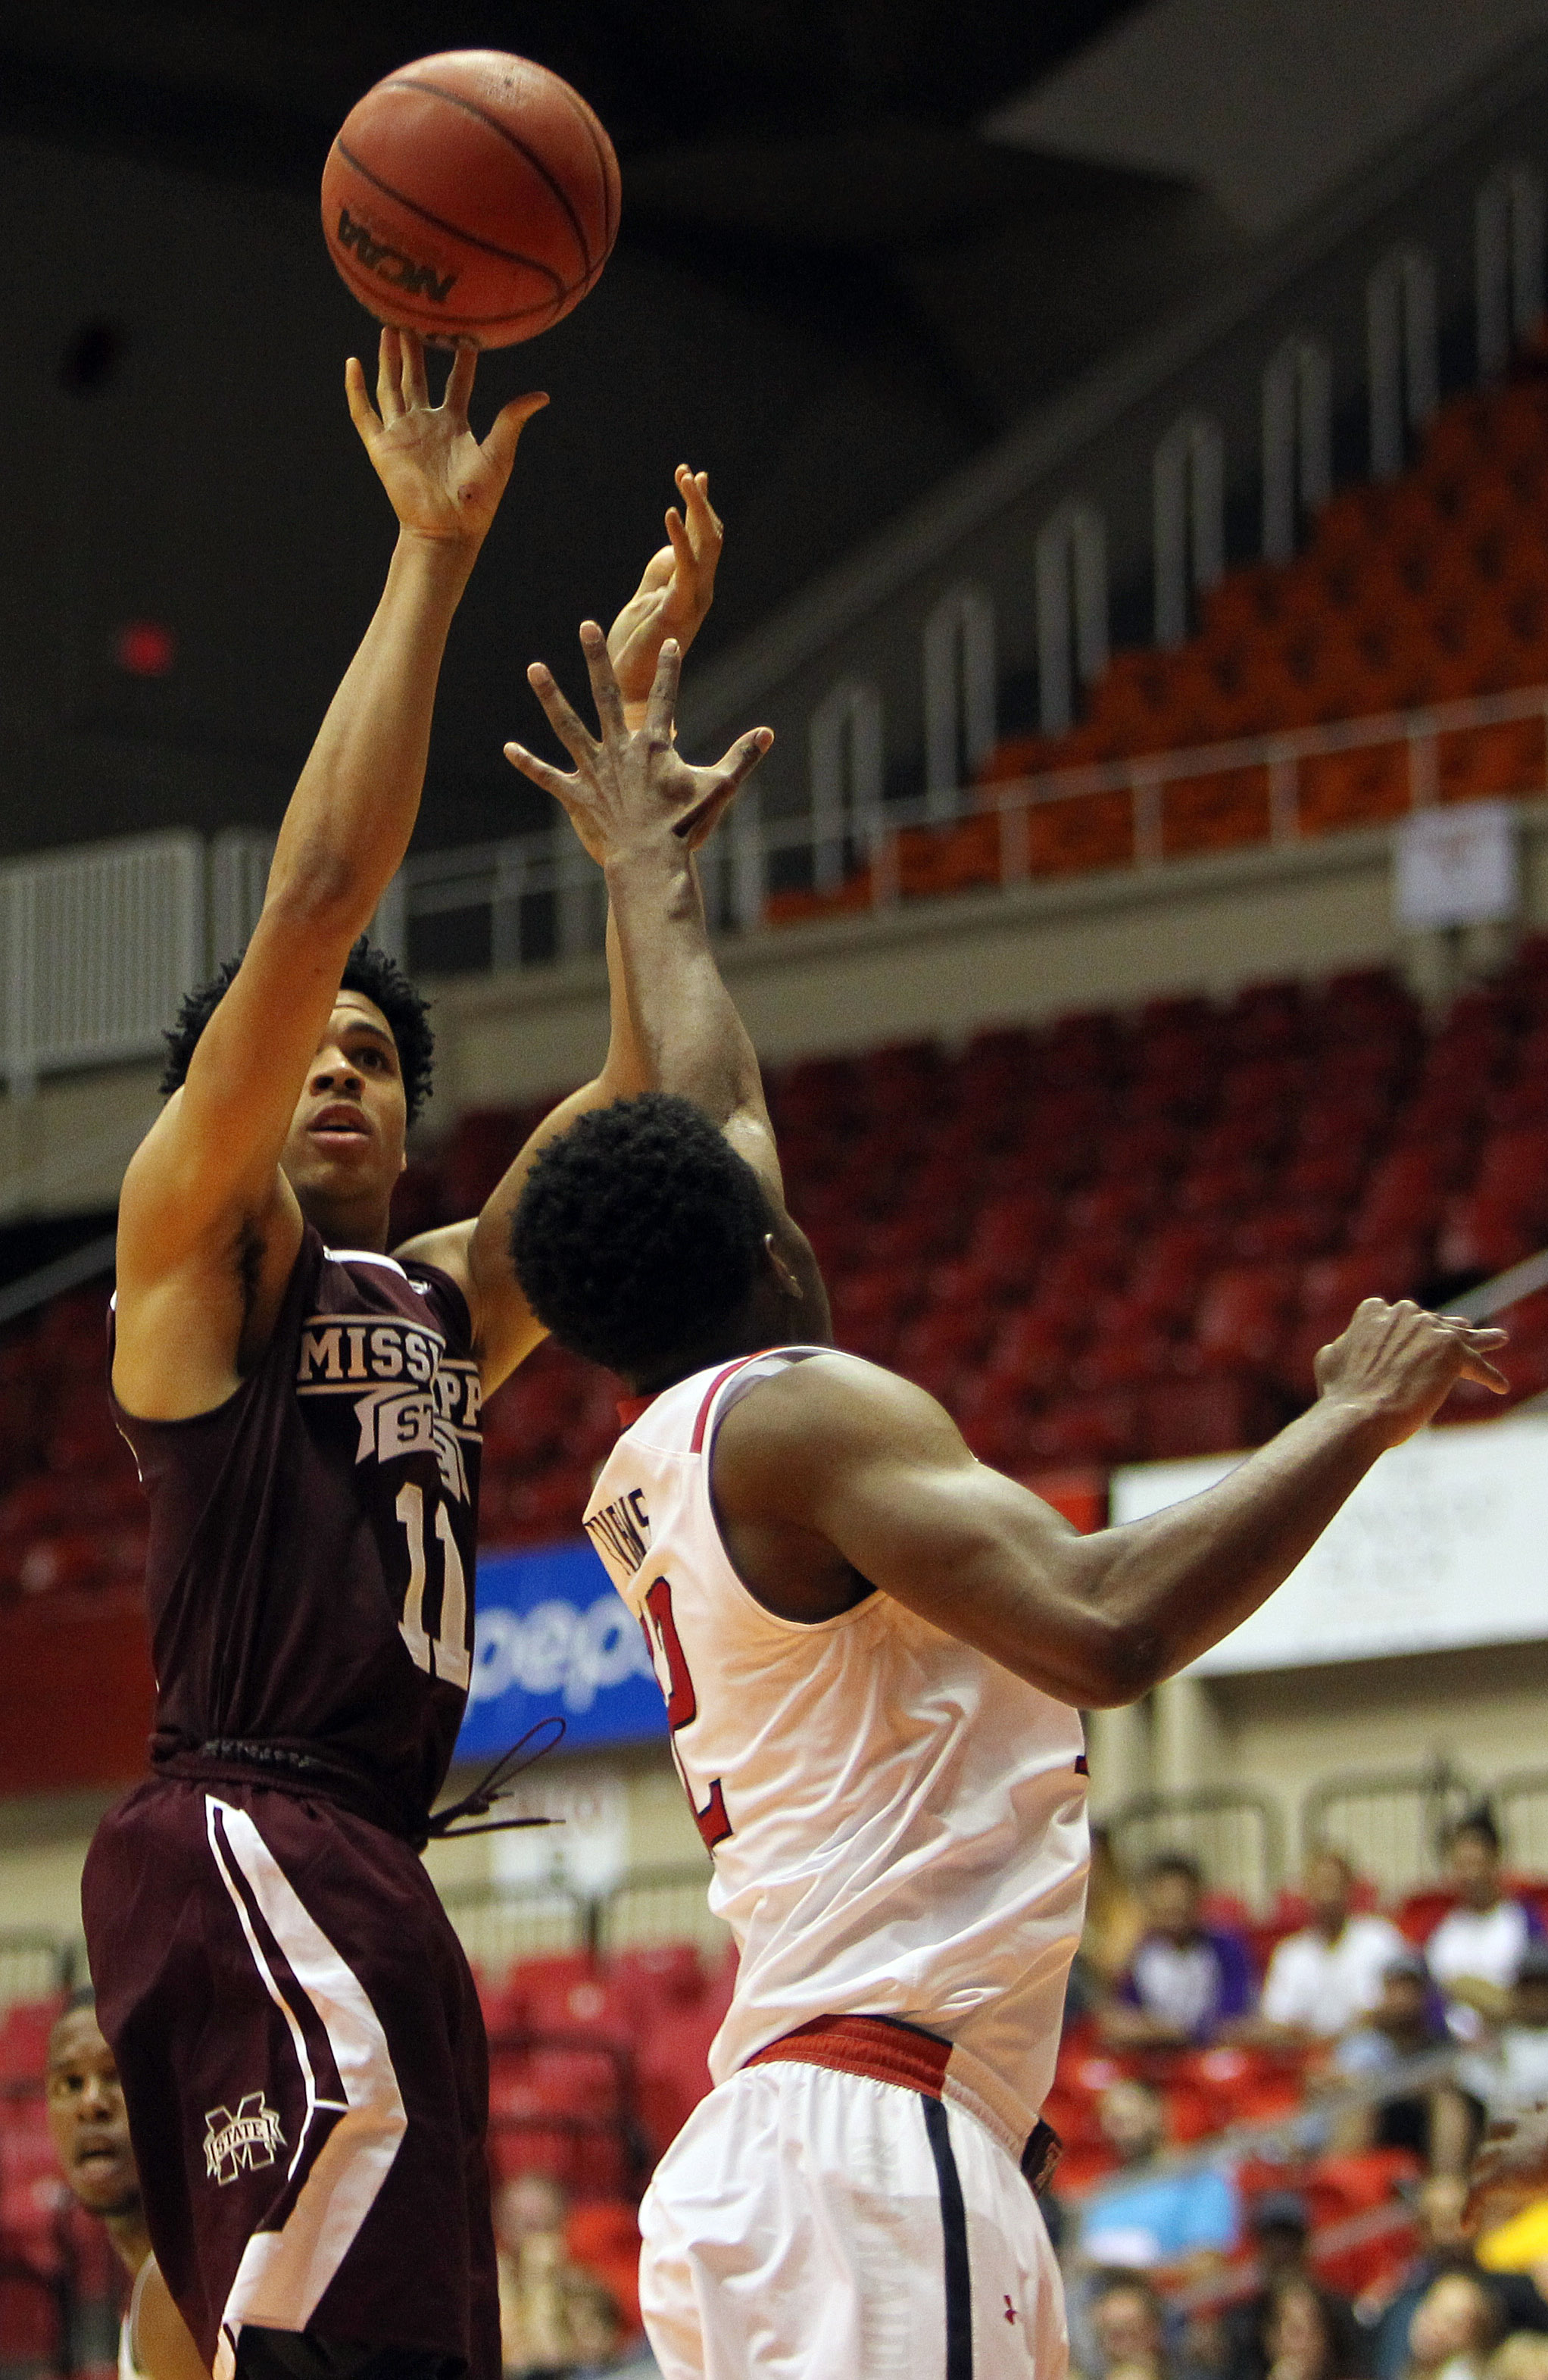 Mississippi St. guard Quinndary Weatherspoon, left, goes to the basket against Texas Tech guard Keenan Evans during the Puerto Rico Tip-Off college basketball tournament in San Juan, Friday, Nov. 20, 2015. (AP Photo/Ricardo Arduengo)